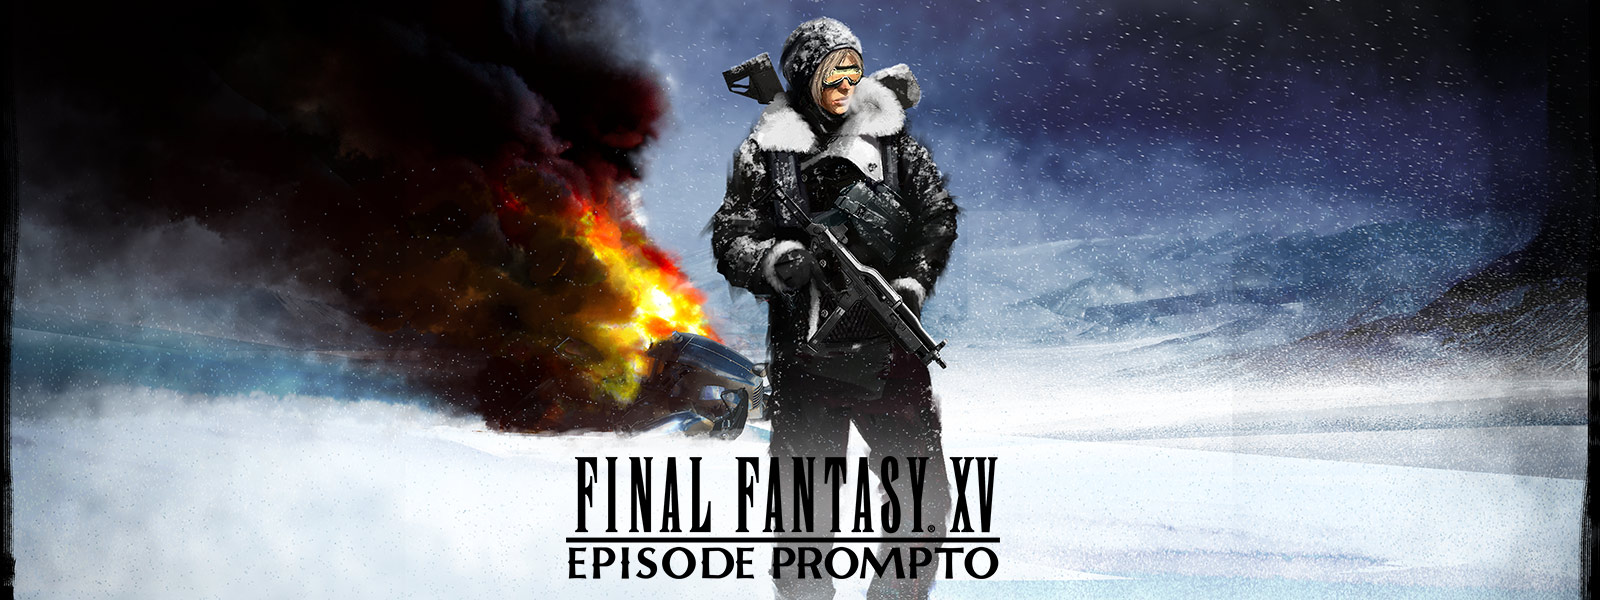 FINAL FANTASY XV: Episode Prompto